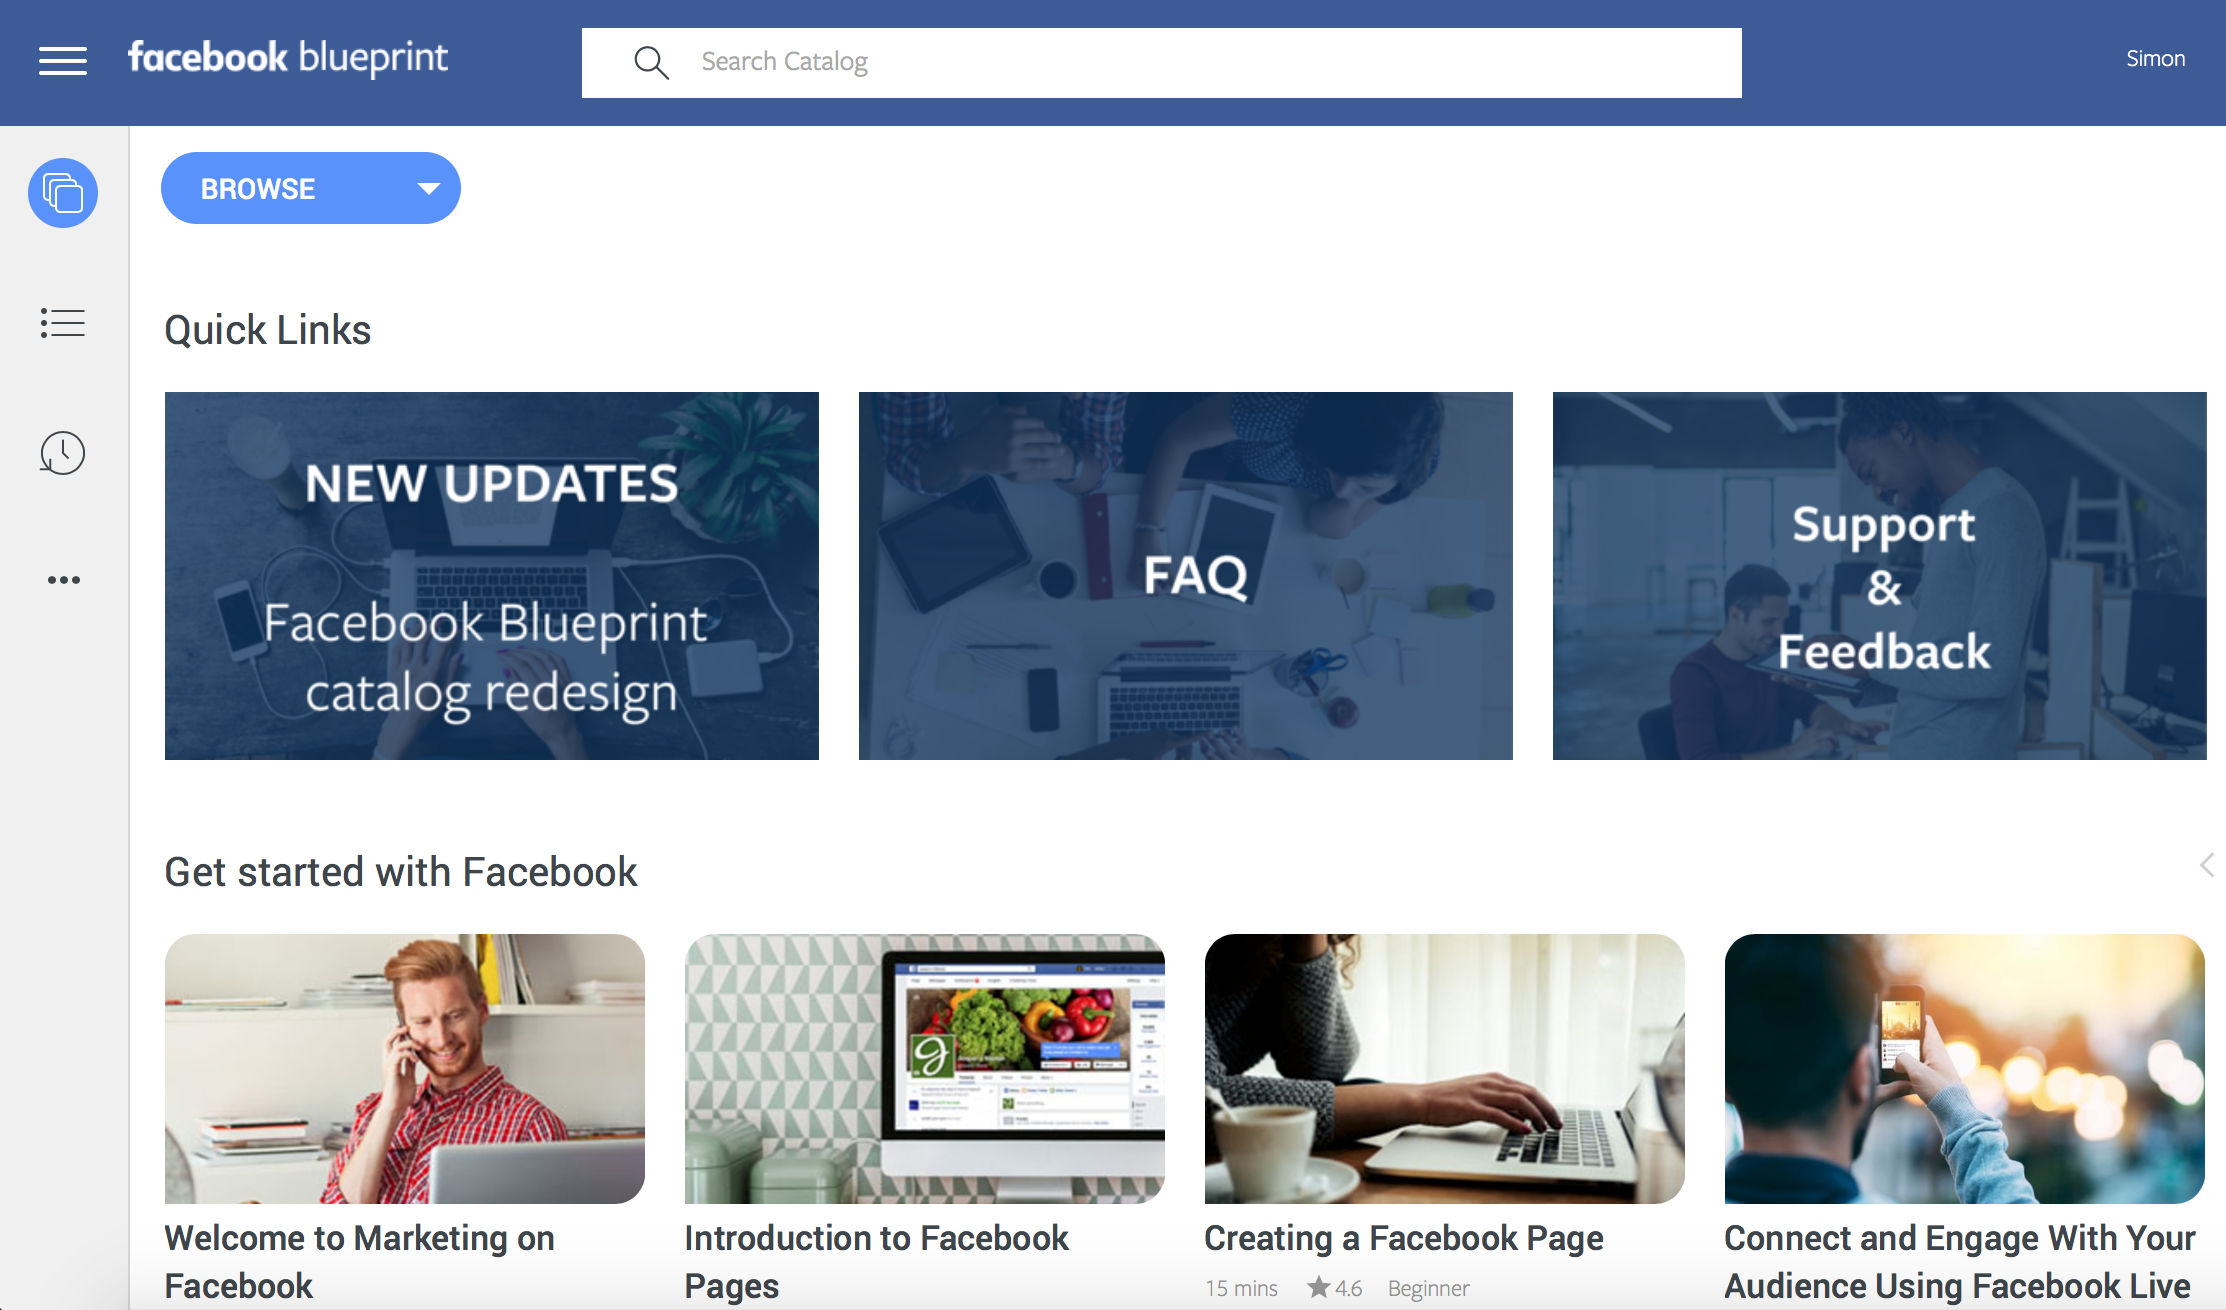 Facebook Releases Latest Blueprint eLearning Course 'Closing The Deal With Conversions